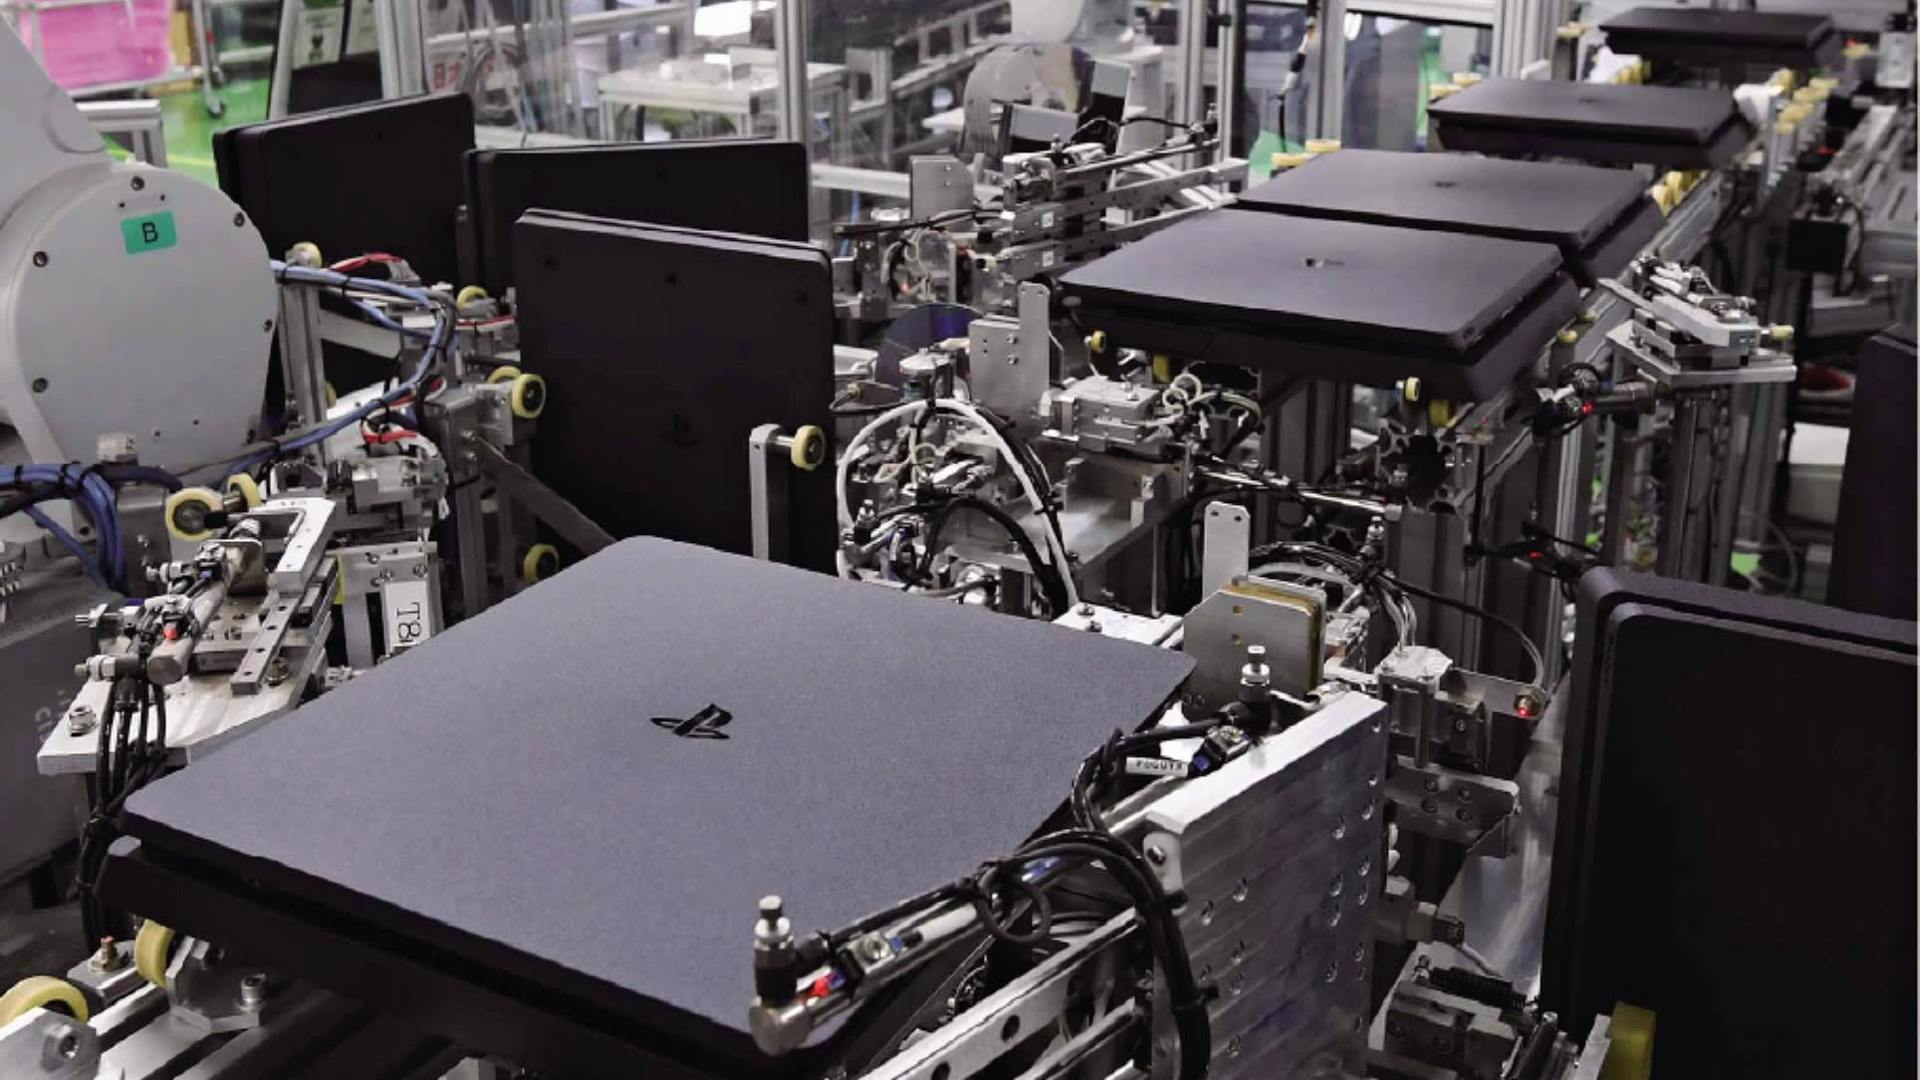 Heart and soul of the Sony manufacturing: a nearly all-automated factory